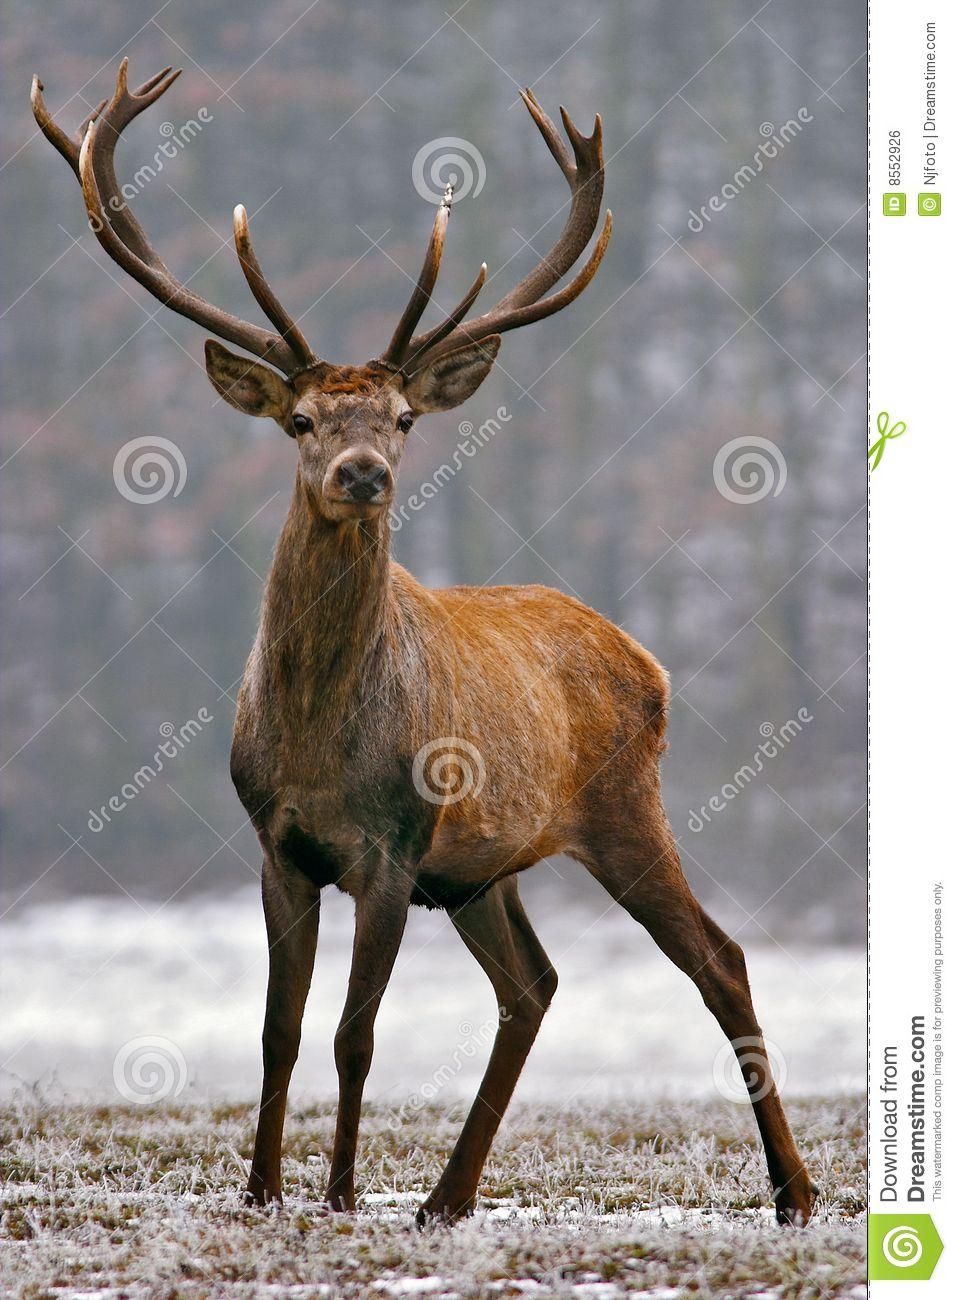 The bighorn deer is the largest representative of the deer family